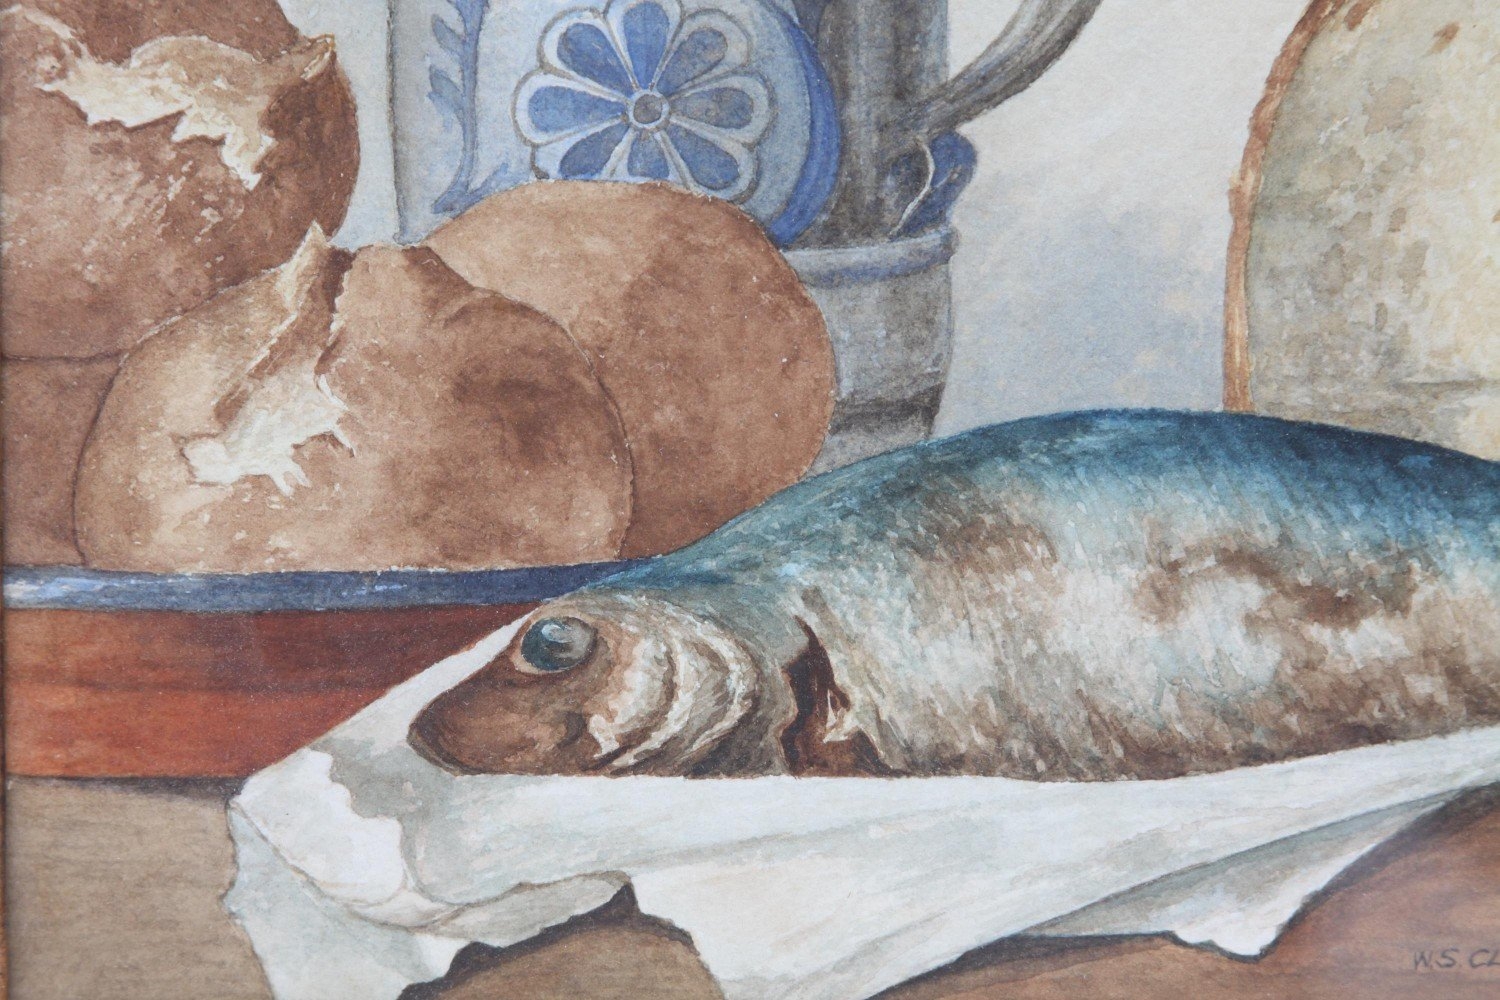 Still Life with Fish, Bread and German Stein by W. S. Clarence